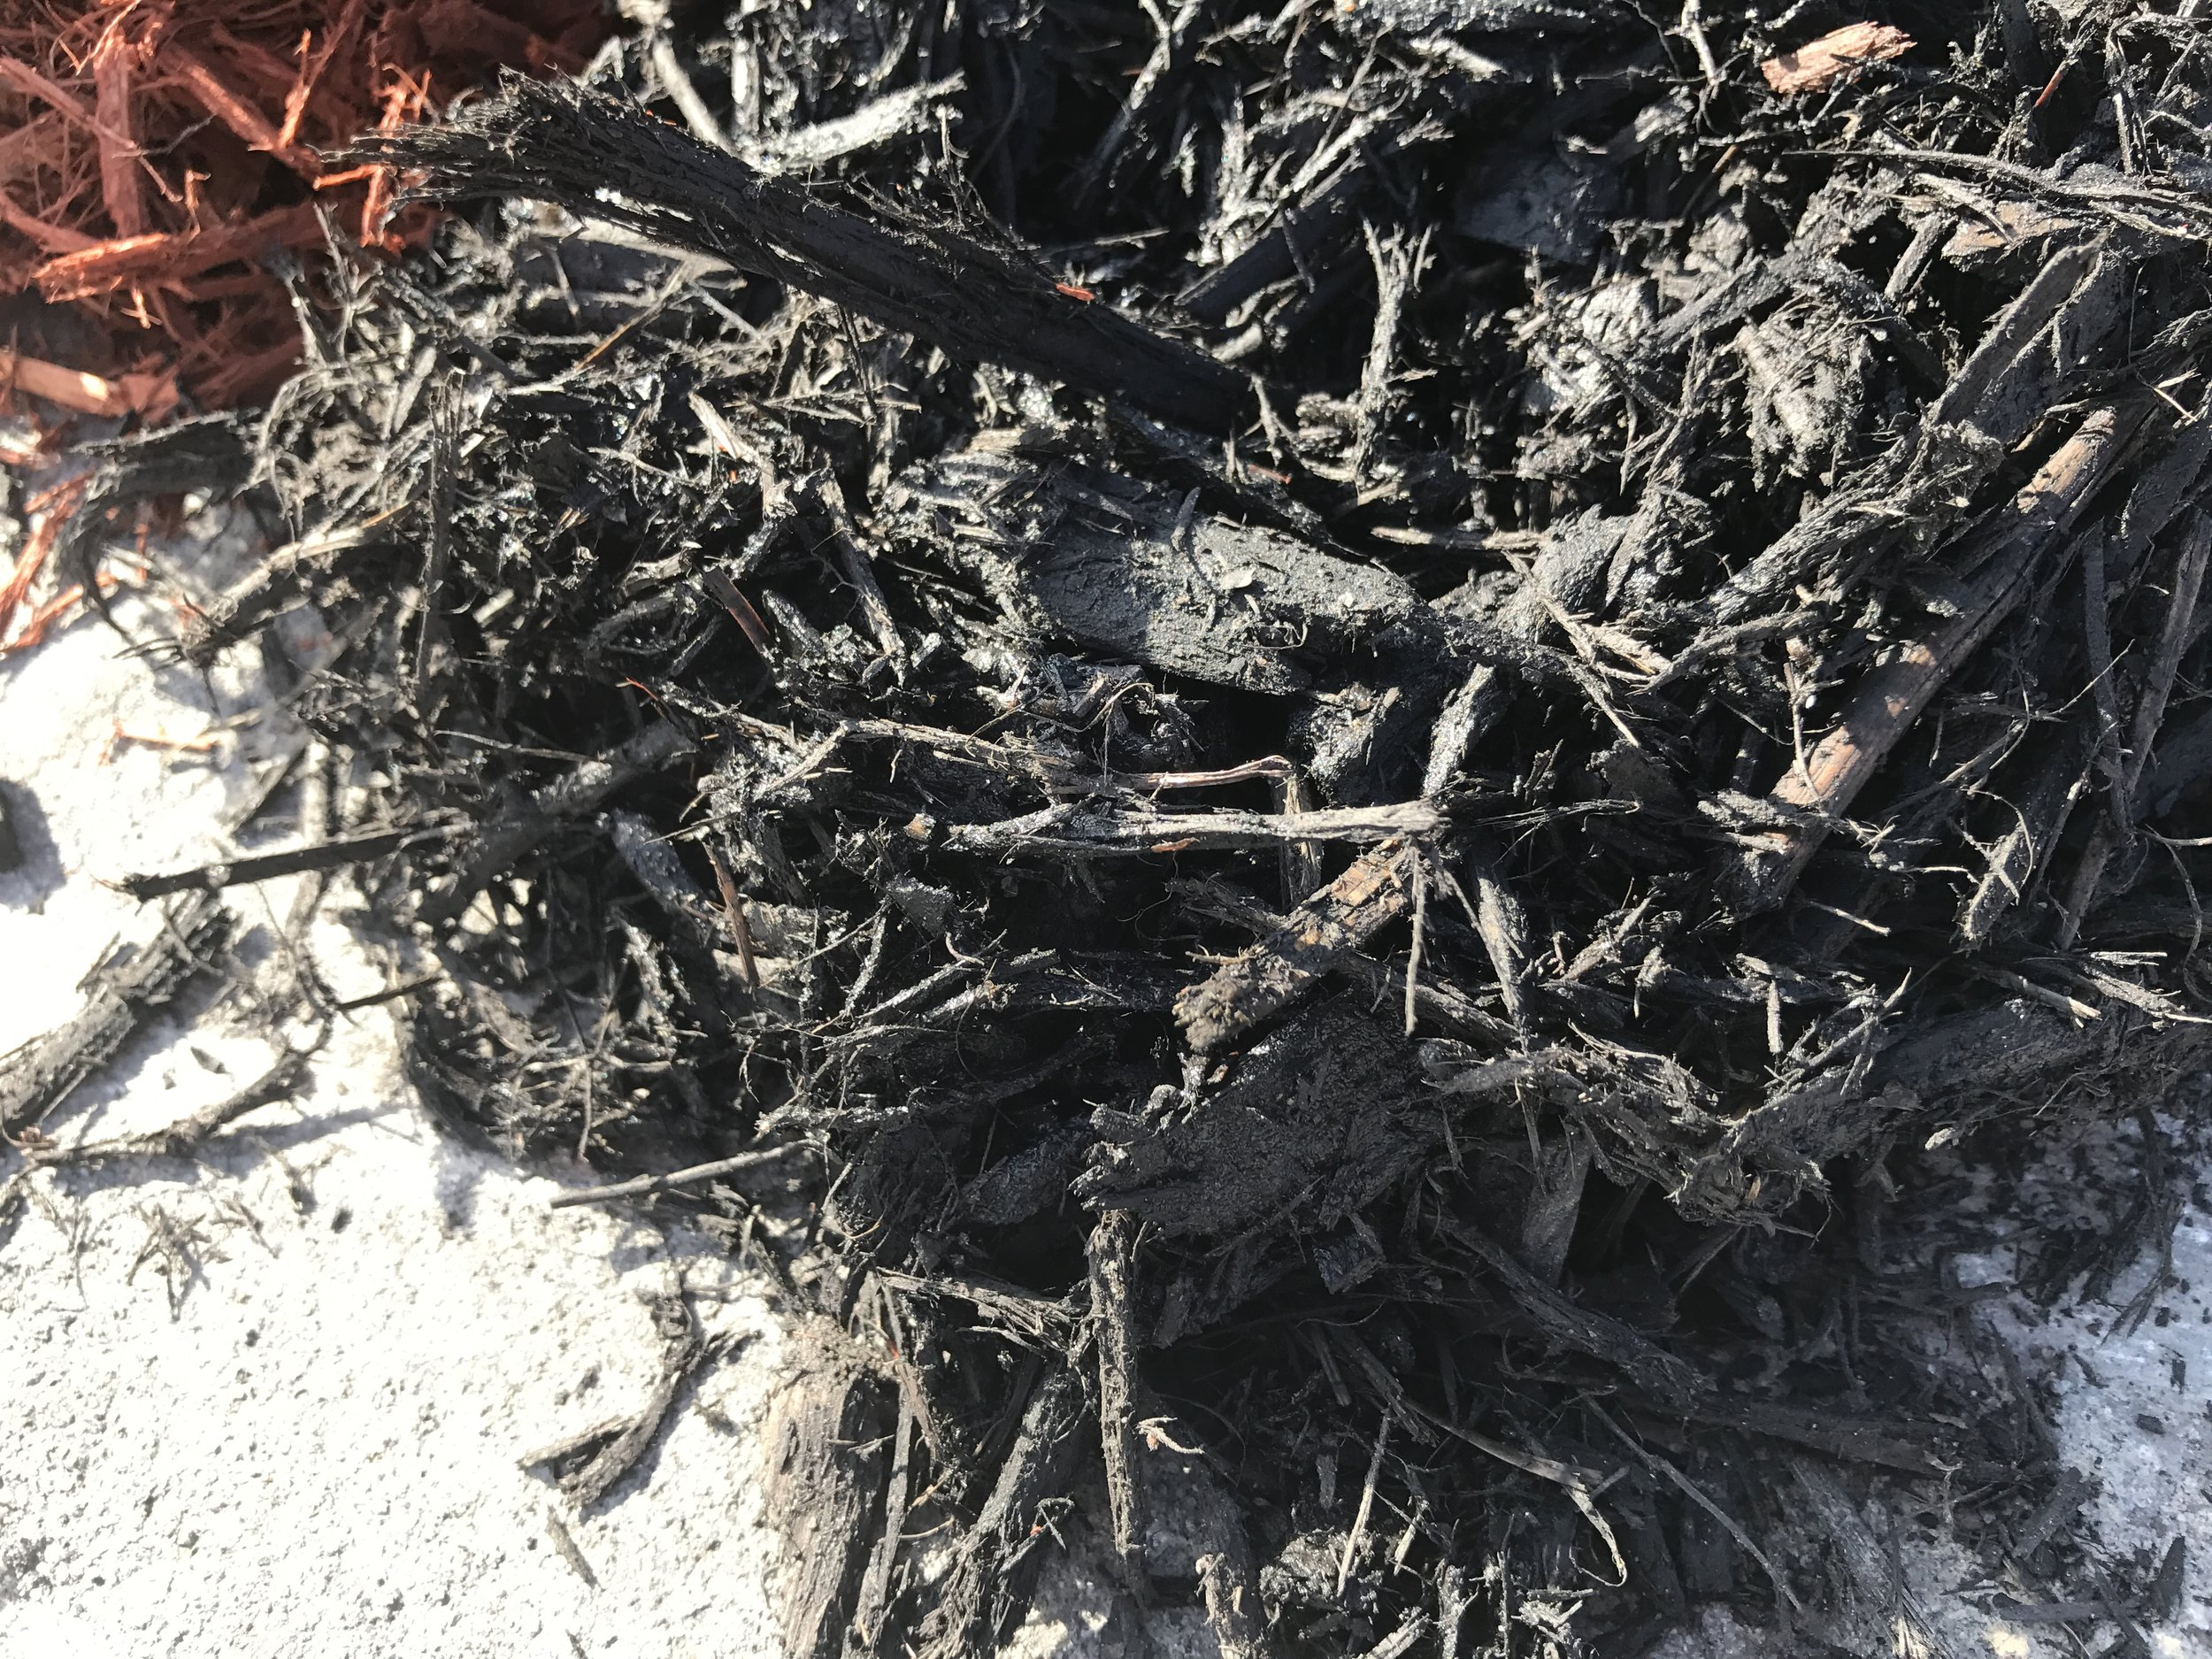 Black Mulch Texture